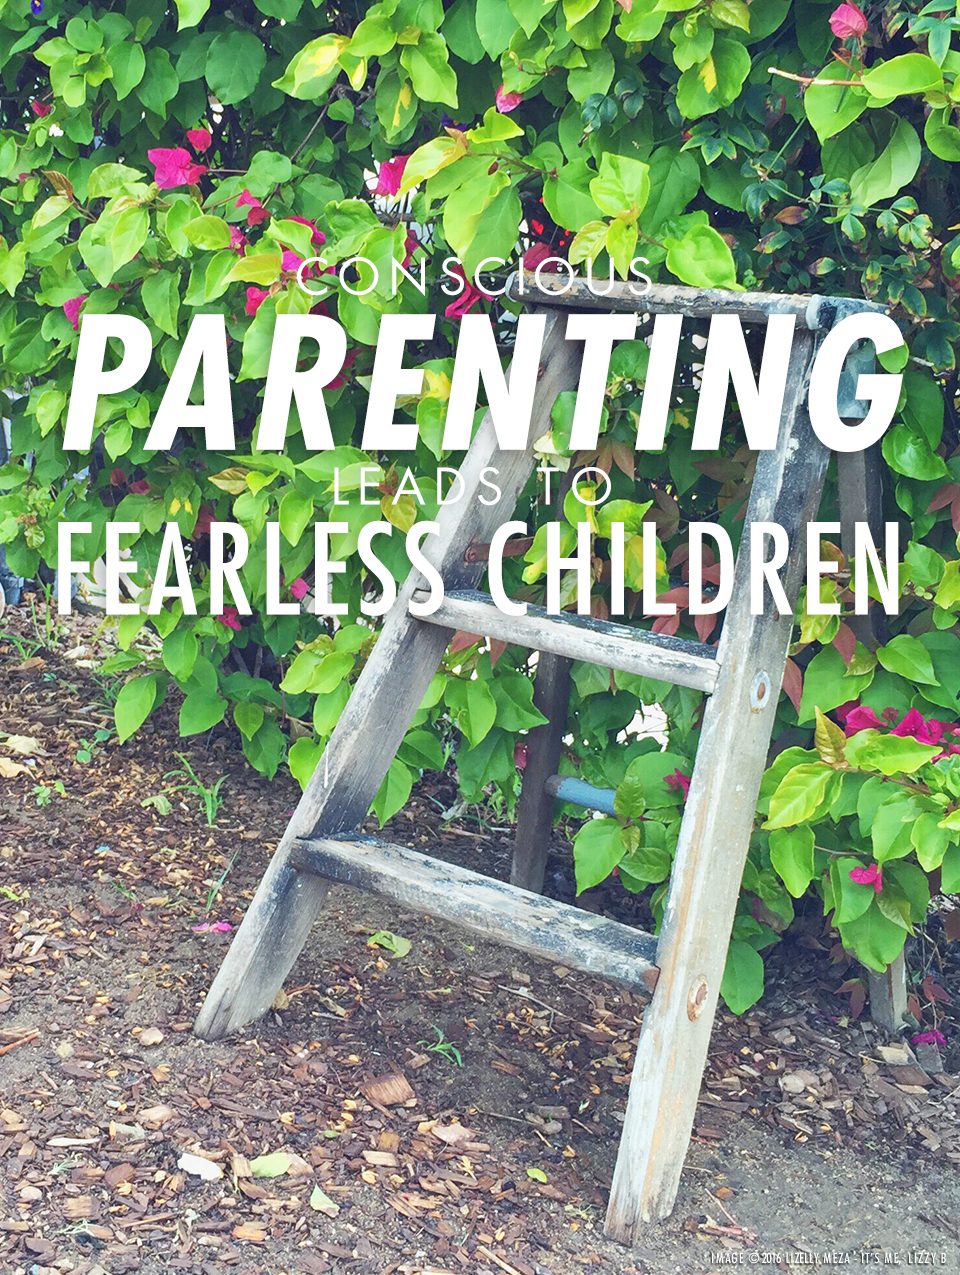 Conscious Parenting Leads to Fearless Children // It's Me, Lizzy B - Musings on Life, Business, & The Pursuit of Everyday Joy // Personal blog of Lizelly Meza from Lizzy B Loves